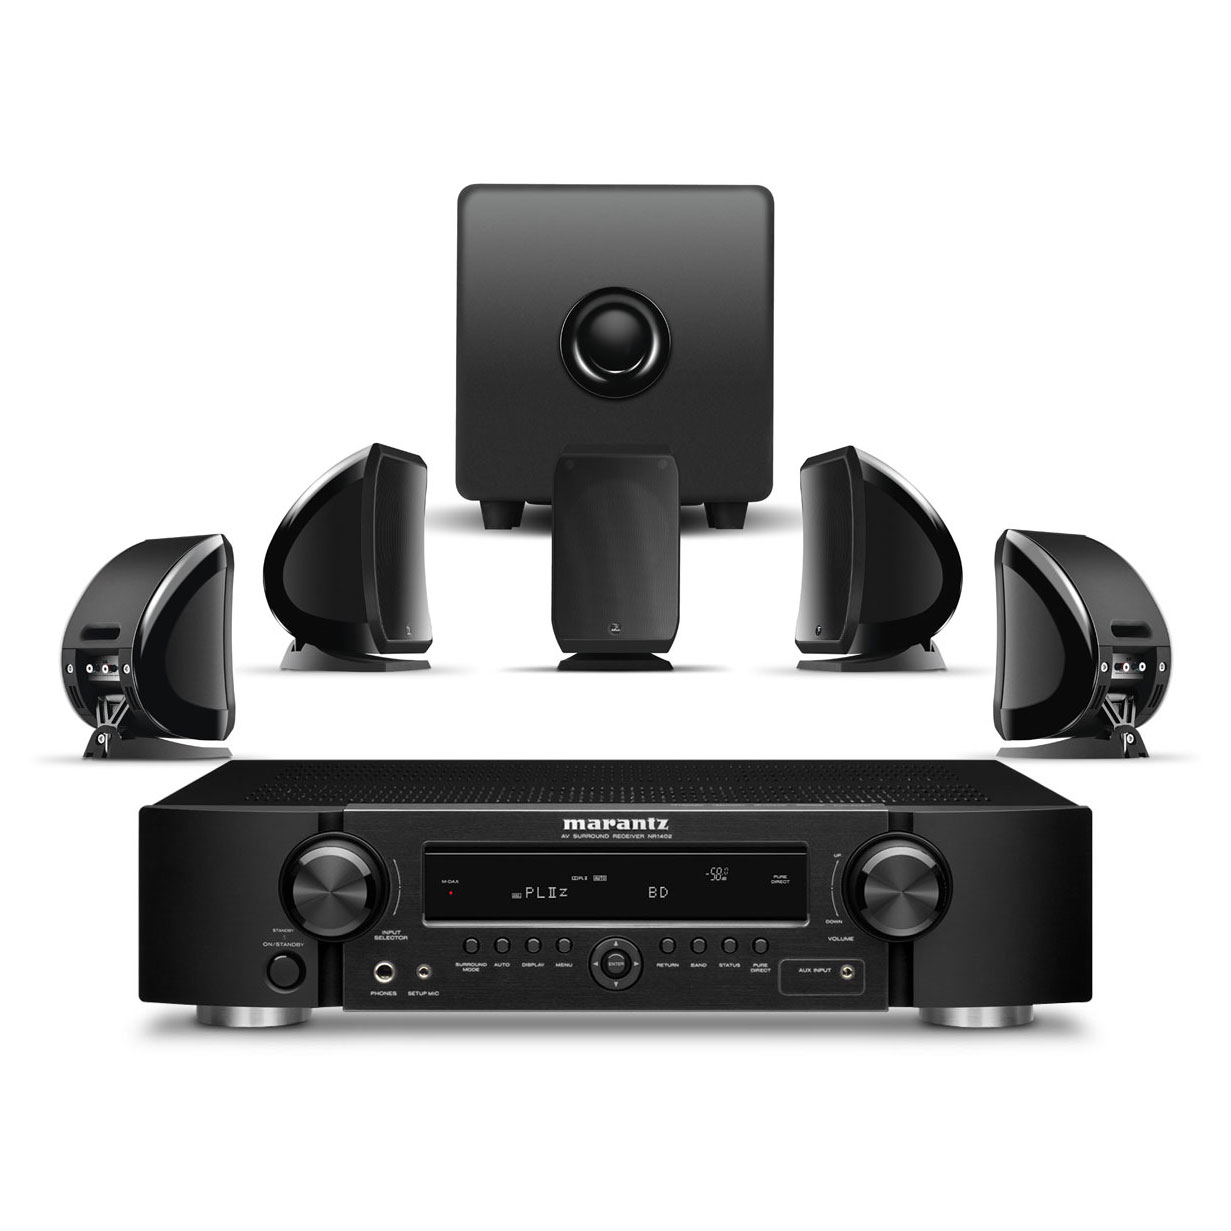 marantz nr1402 focal sib cub 2 jet noir ensemble. Black Bedroom Furniture Sets. Home Design Ideas